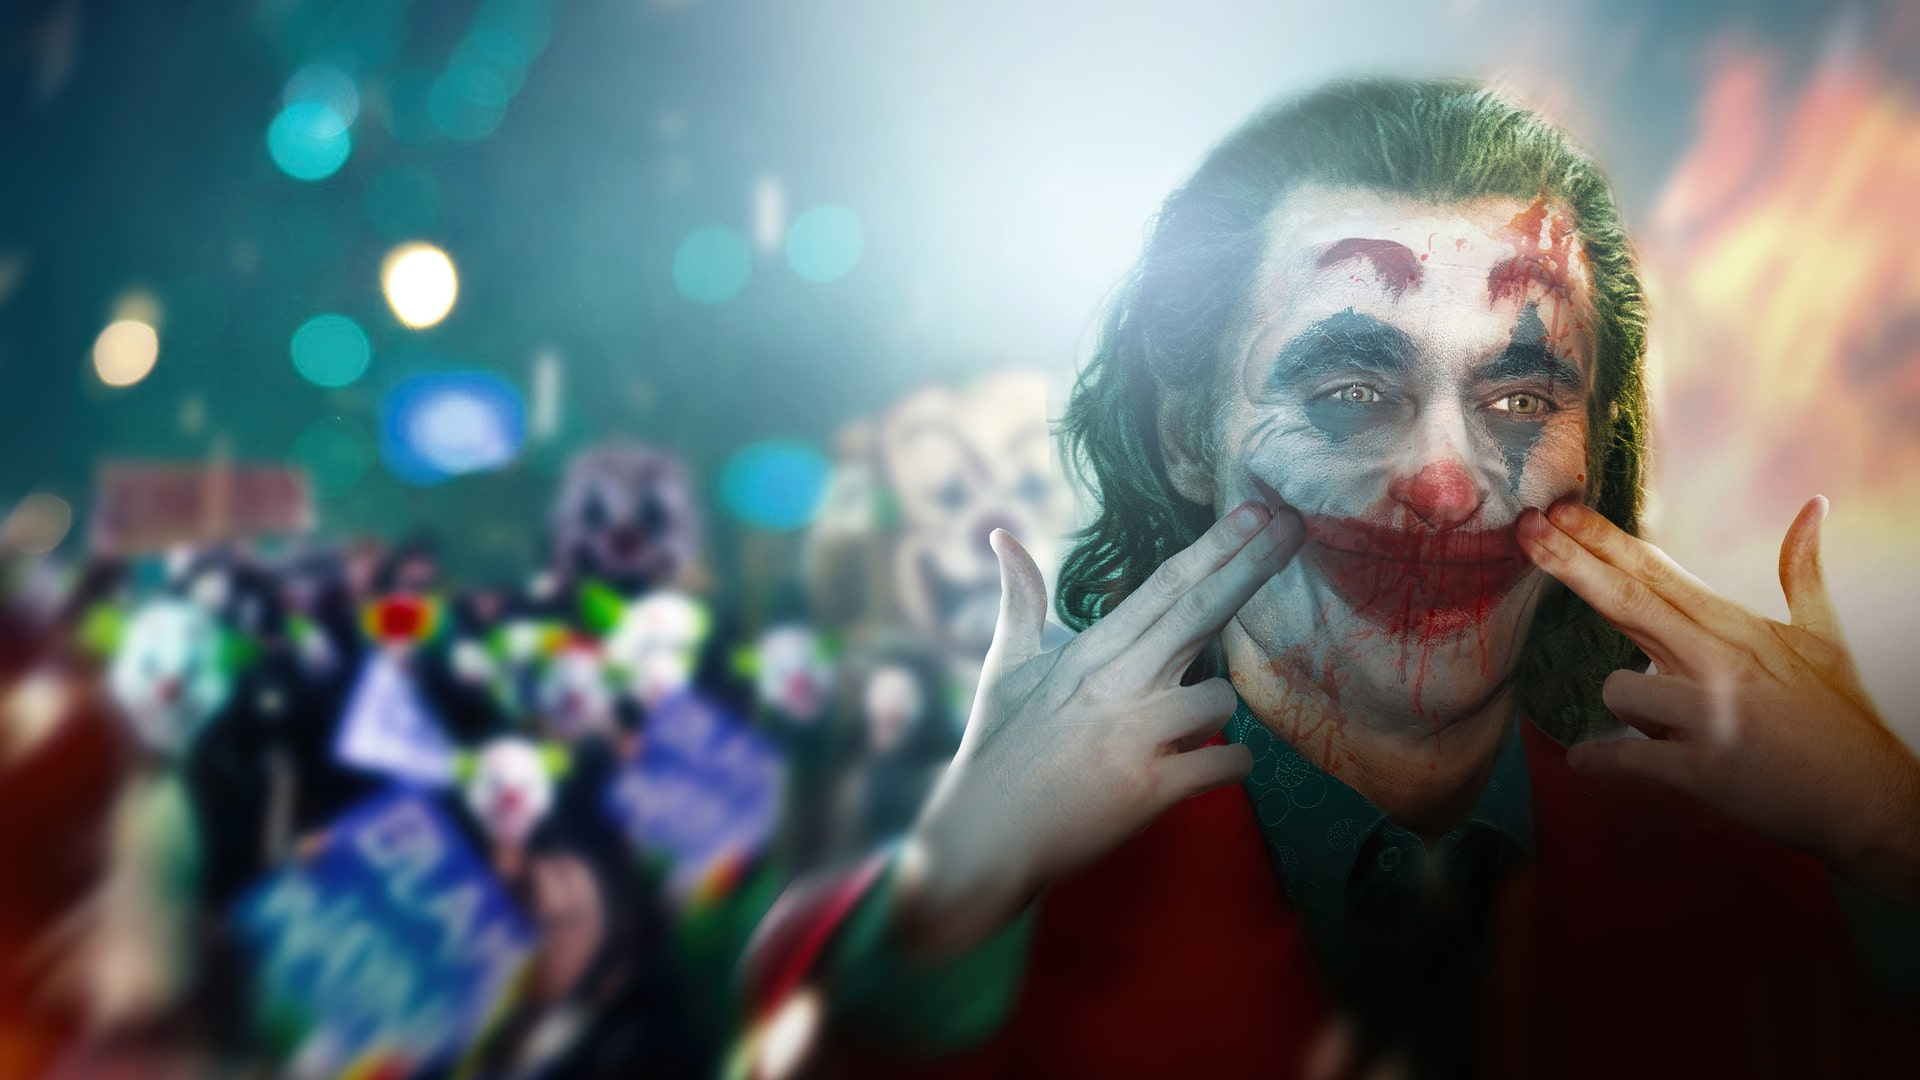 joker wallpaper, joker smile wallpaper